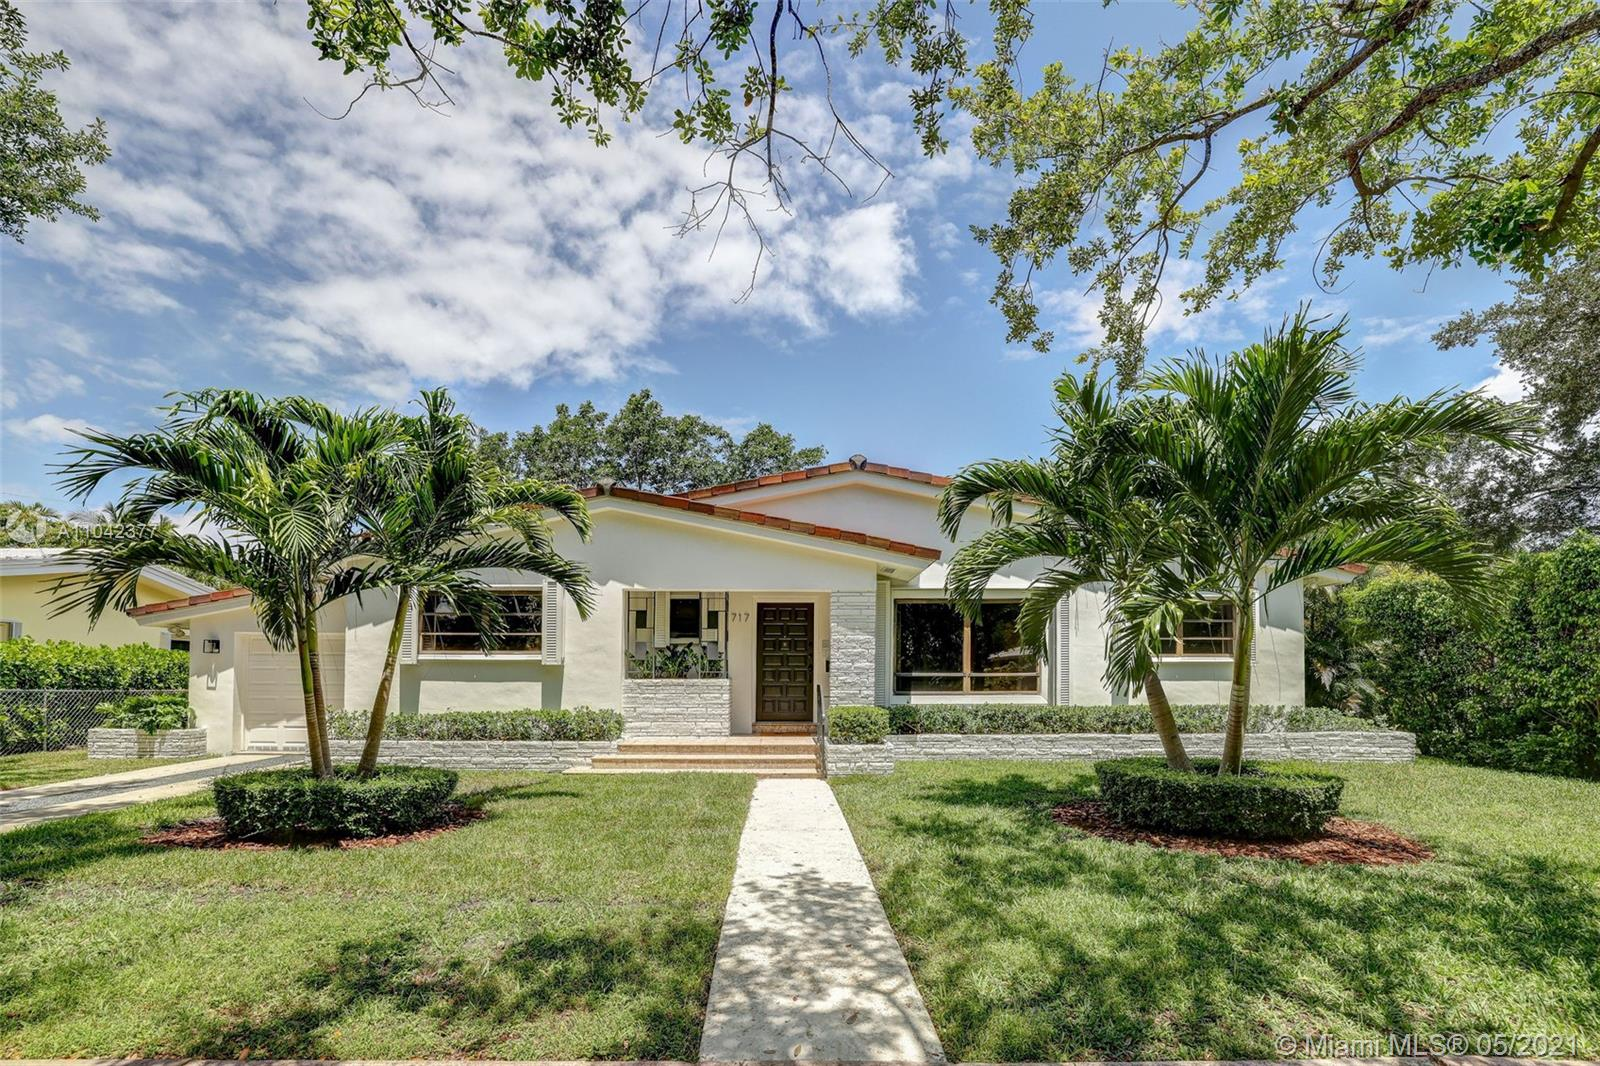 A perfect family home on a quiet tree-lined street in Coral Gables. 4 large bedrooms, 3 full baths, split floor plan, a 1 car garage, and a super-sized completely remodeled chef's kitchen! Sistina Avenue is one of the loveliest and least trafficked streets in Coral Gables. Location is key here as you will be living less than 15 minutes to the best schools, restaurants, shopping, airport, Downtown/Brickell, and University of Miami.